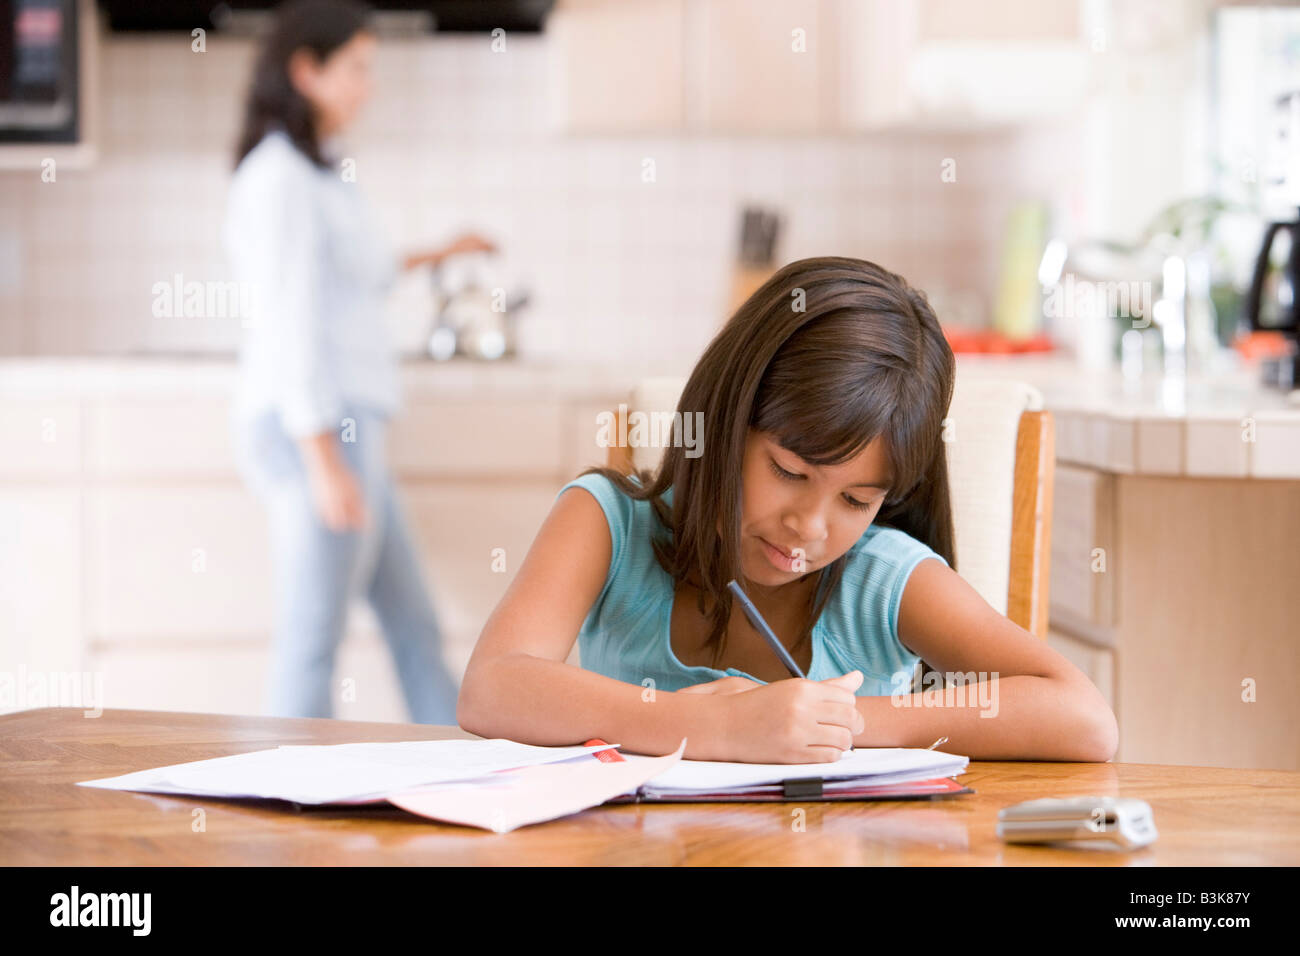 Young girl in kitchen doing homework with woman in background - Stock Image